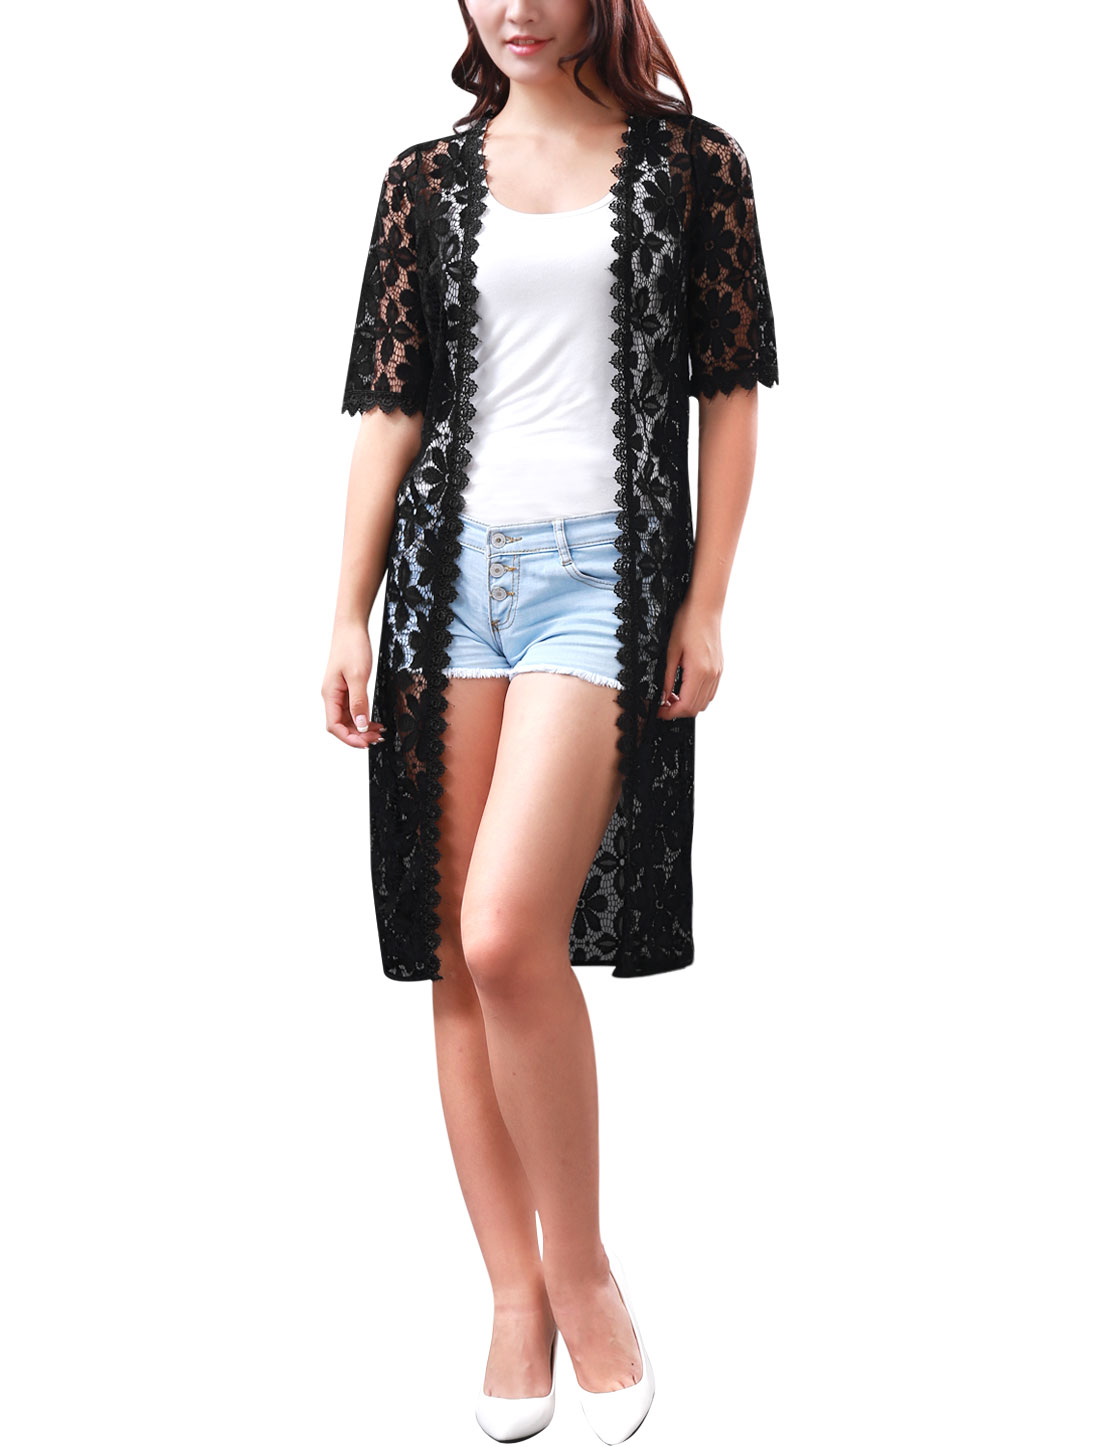 Women Opening Front Hollow Out Crochet Panel Long Lace Cardigan Black XS